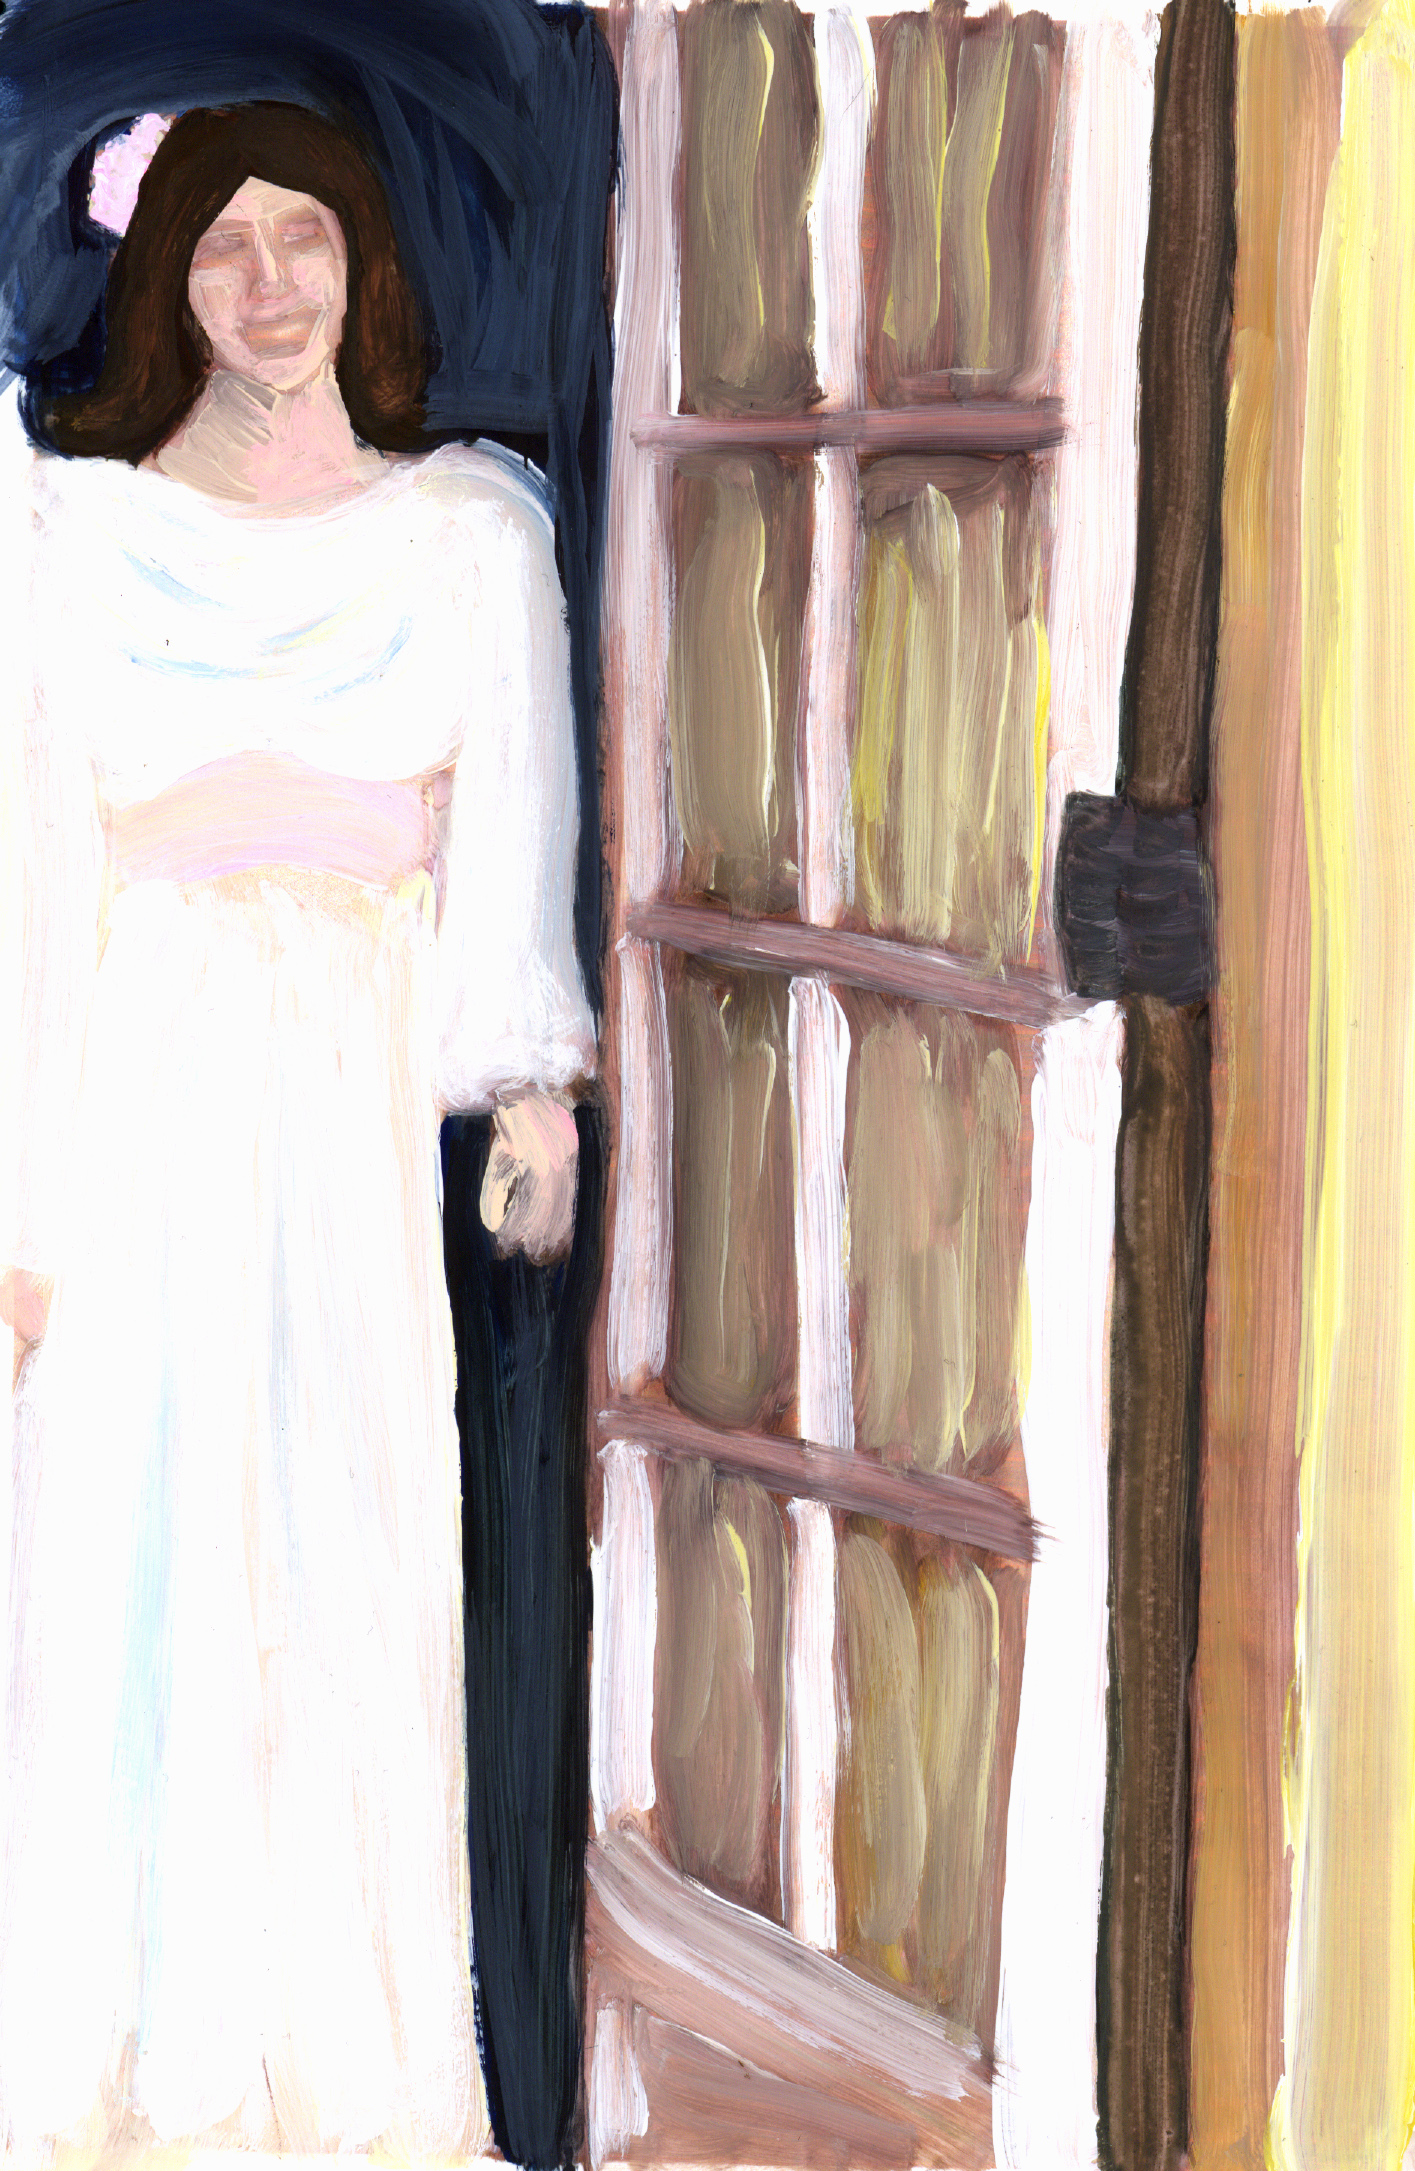 the most remarkable thing about you standing in the doorway is that it's you and you're standing in the doorway